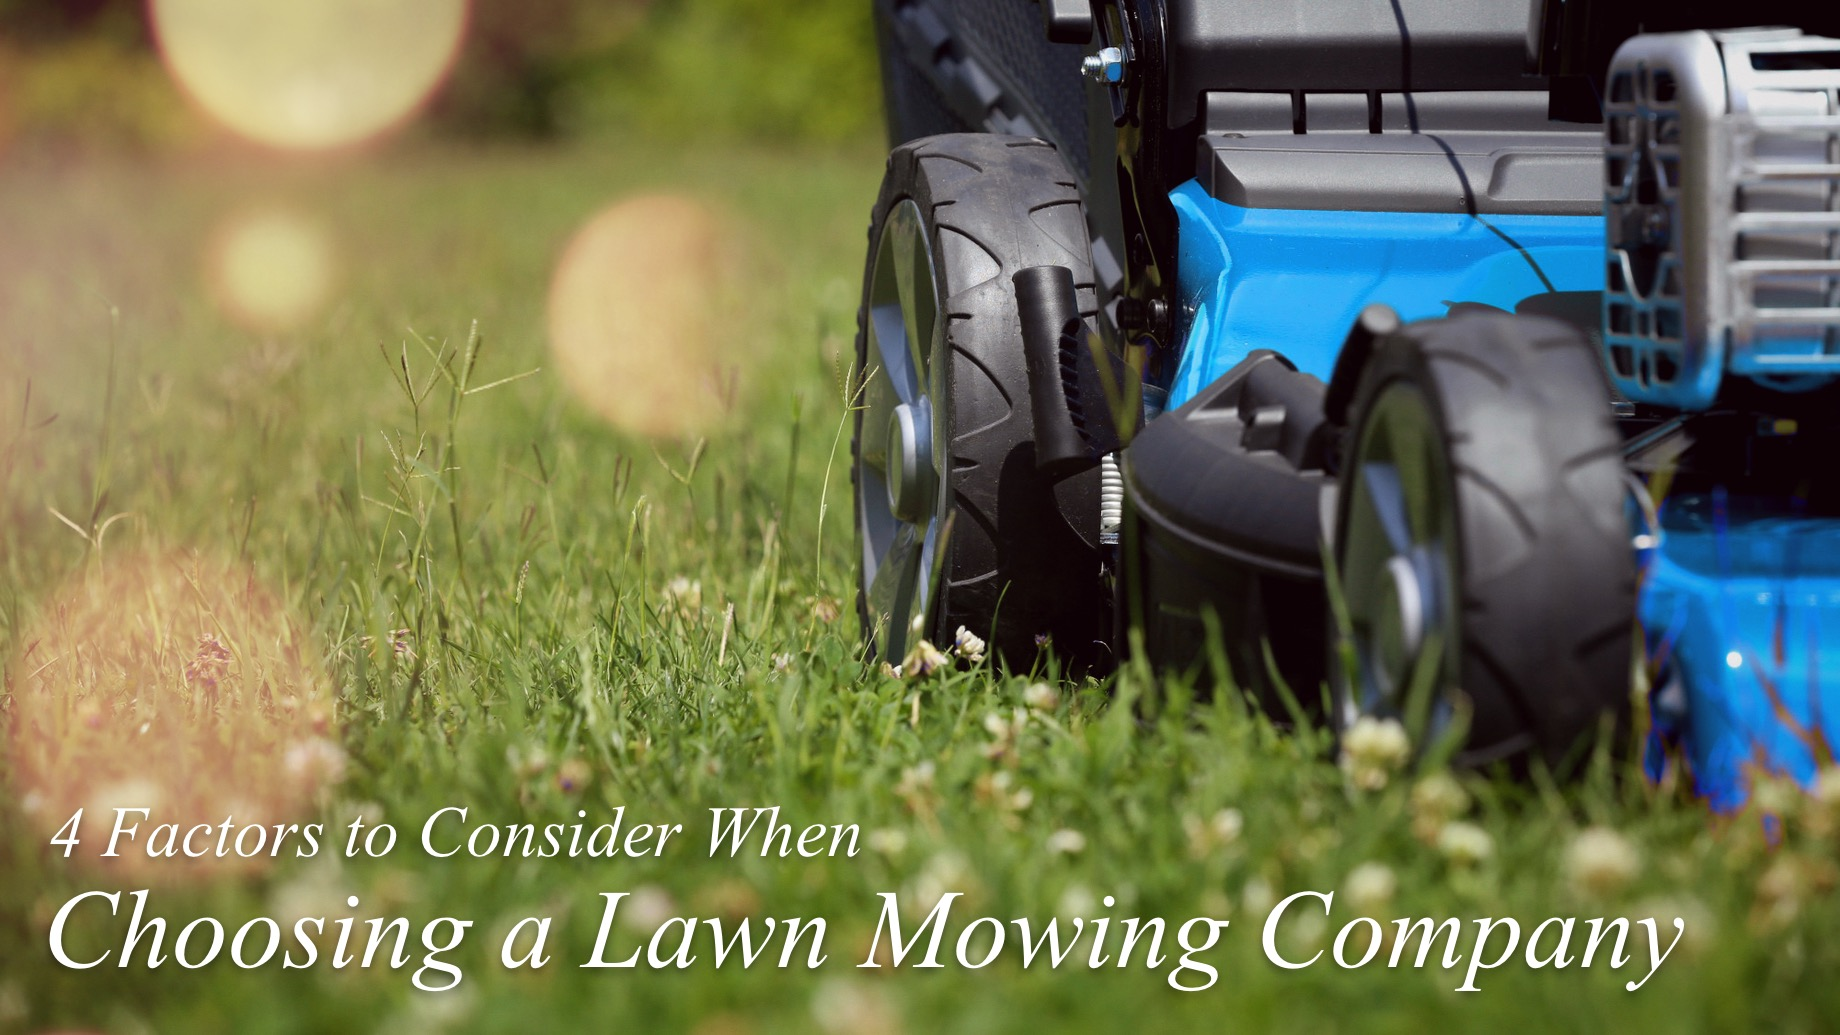 4 Factors to Consider When Choosing a Lawn Mowing Company